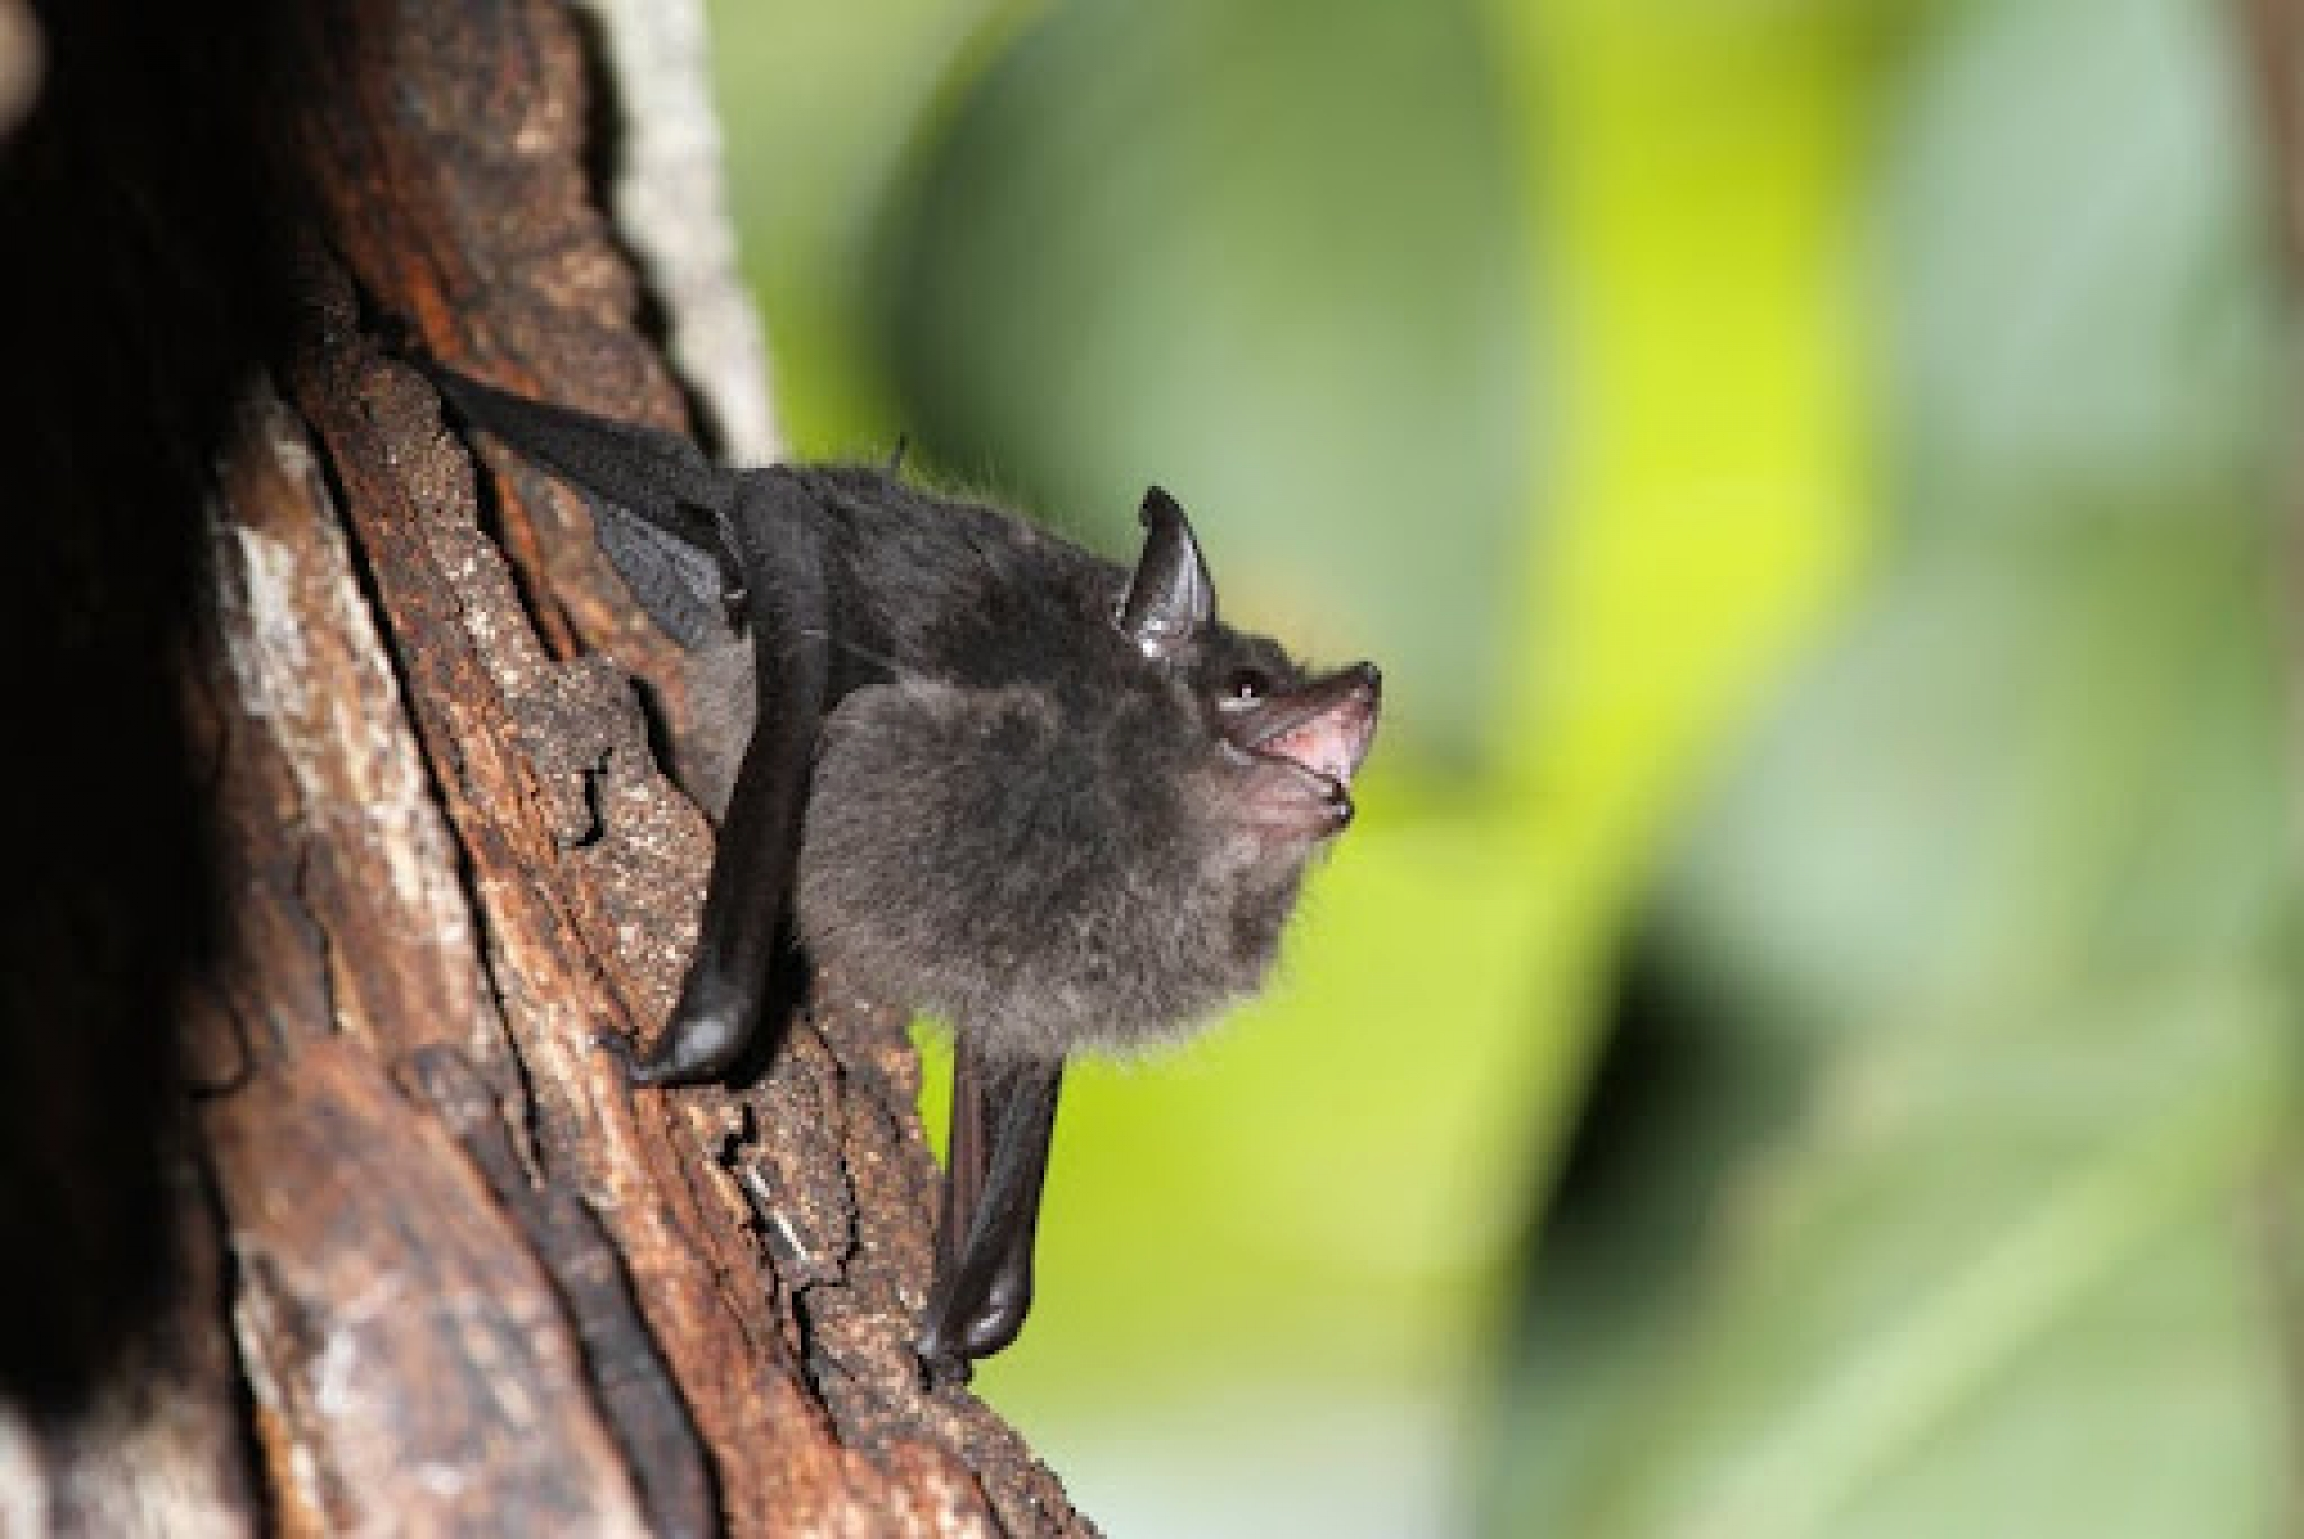 A greater sac-winged bat pup babbling in its day roost.